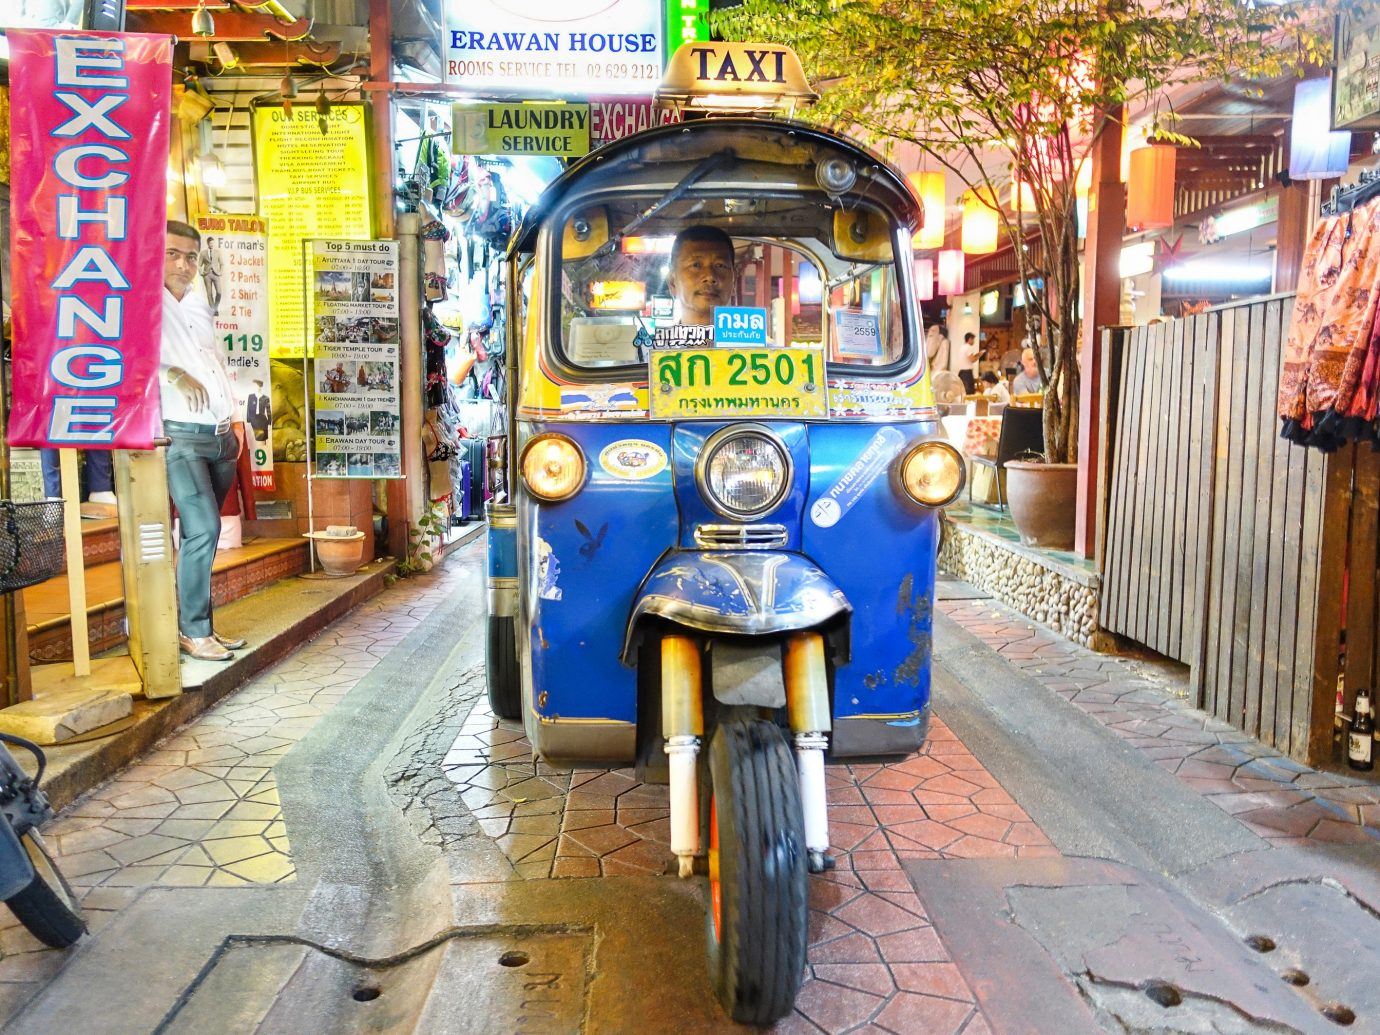 Hotels ground road transport outdoor street City urban area vehicle sidewalk infrastructure rickshaw way public transport travel pedestrian colorful